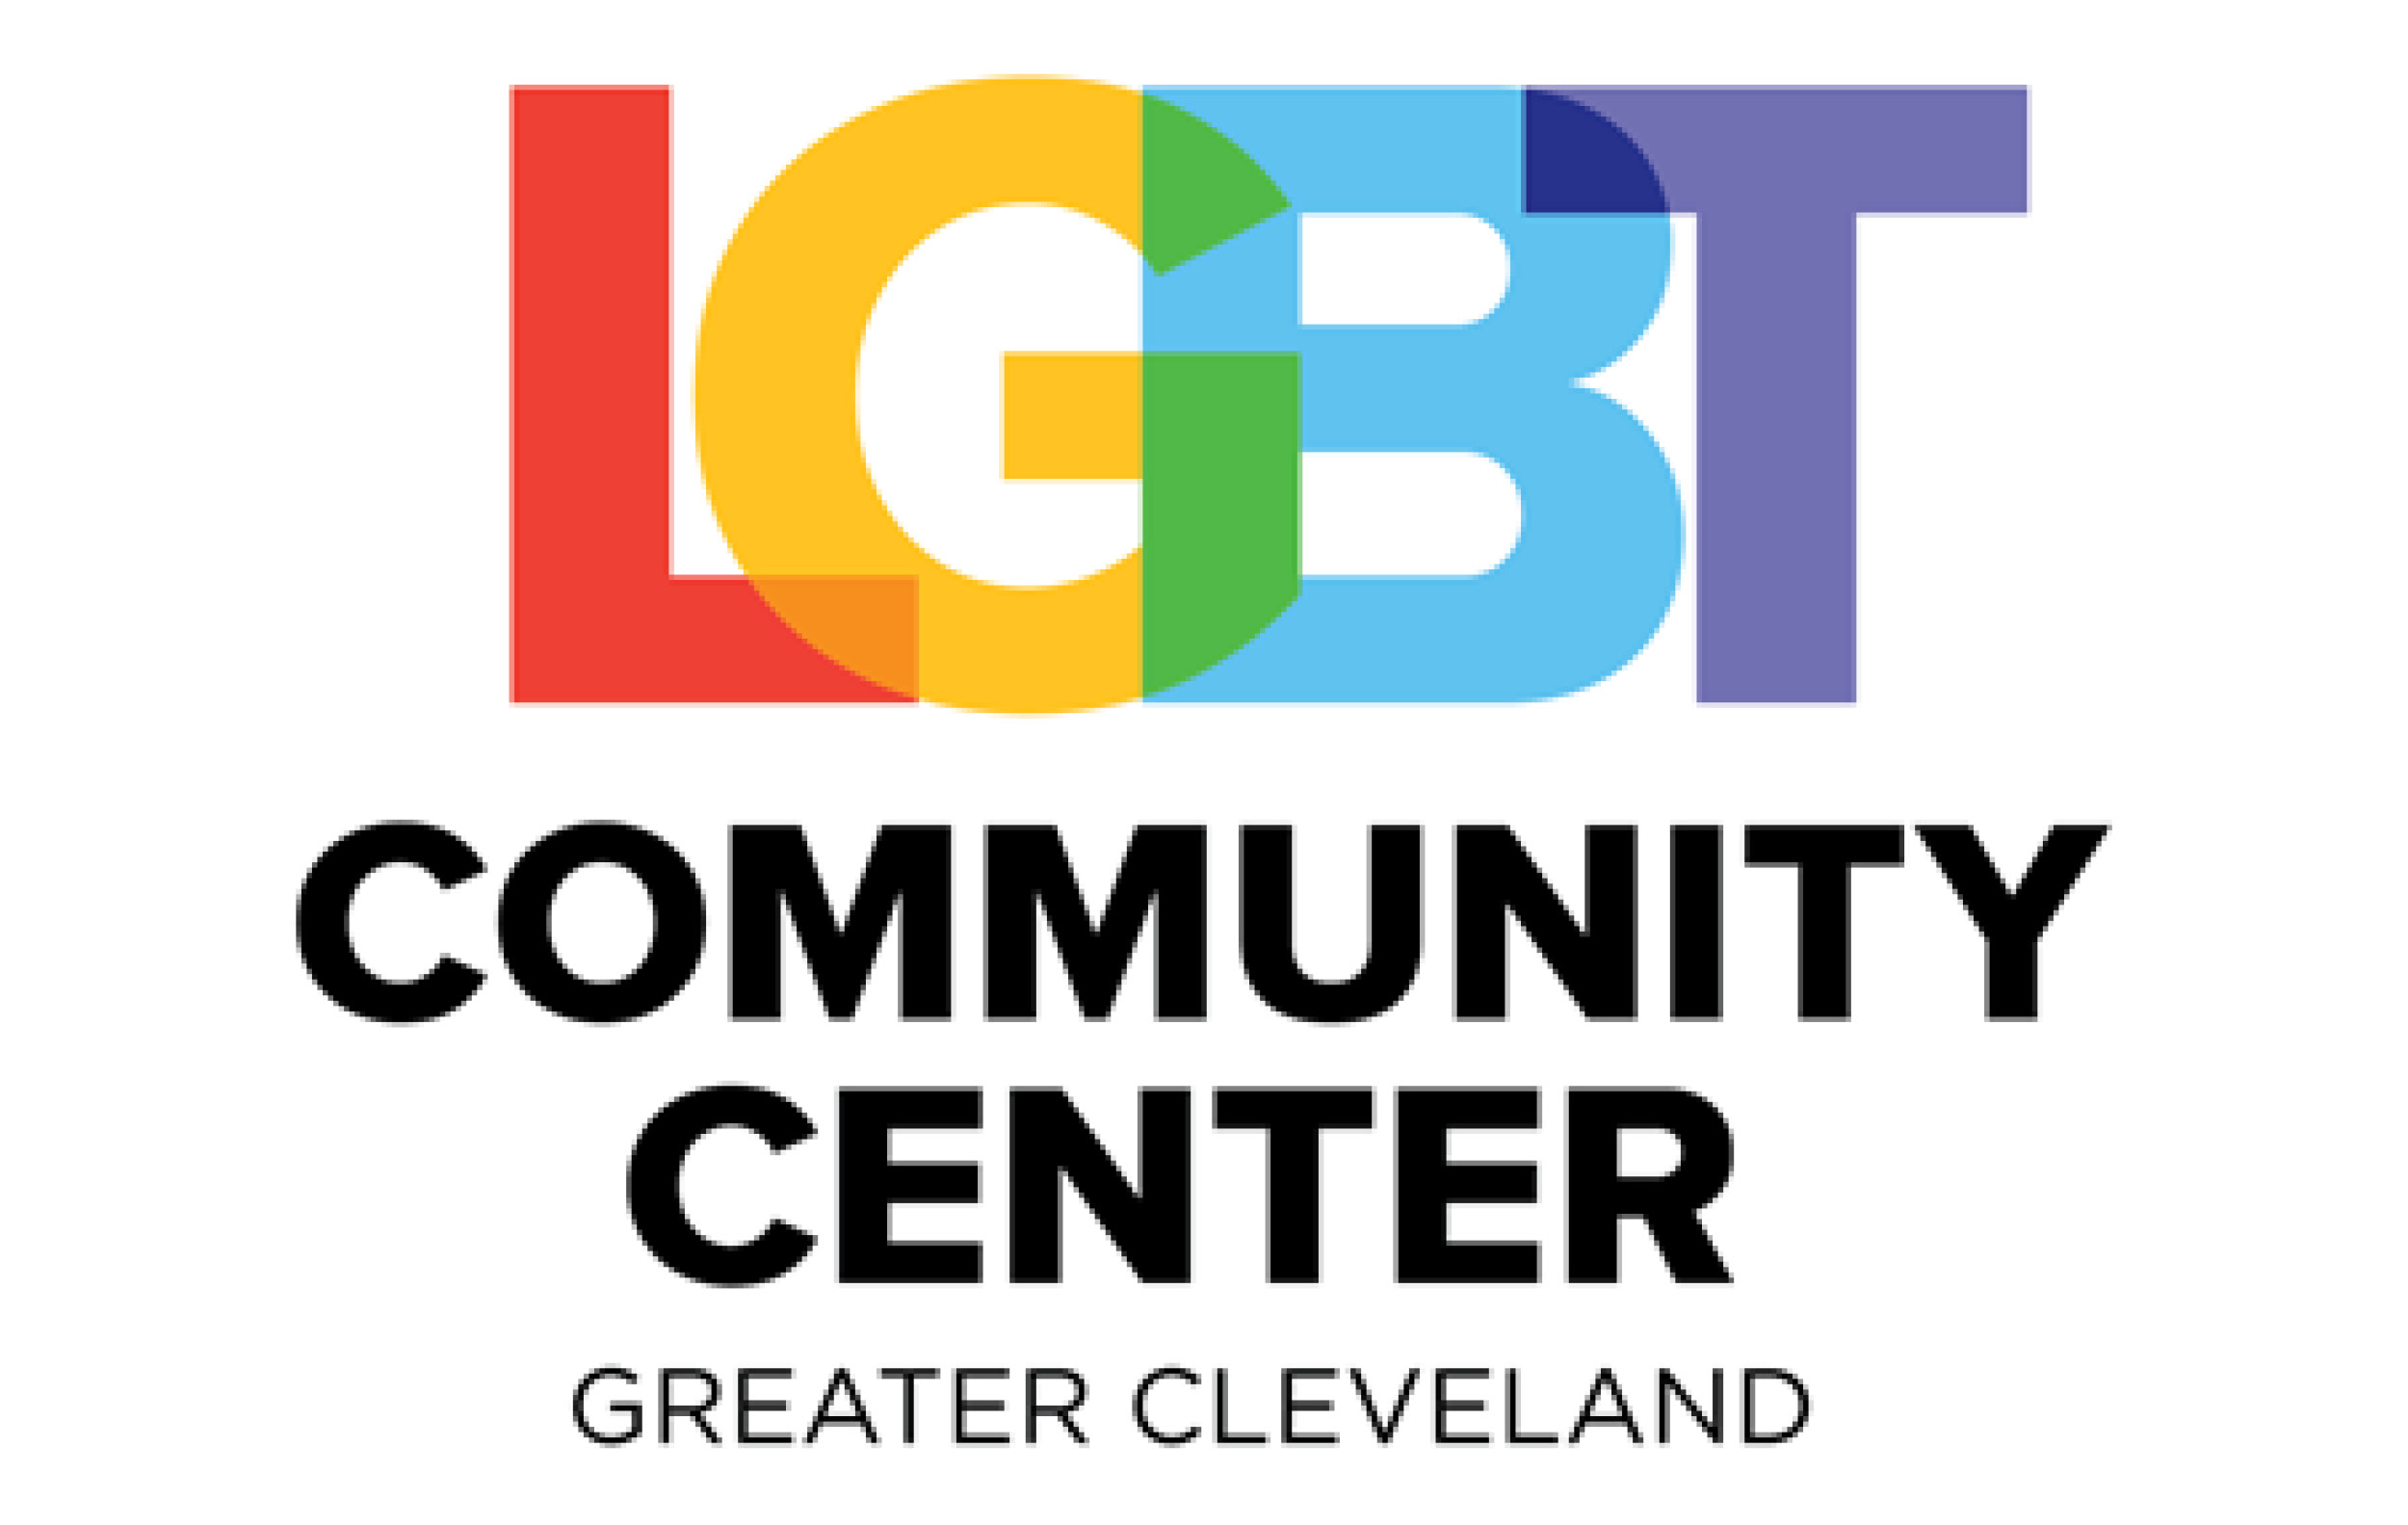 LGBT Center Greater Cleveland b